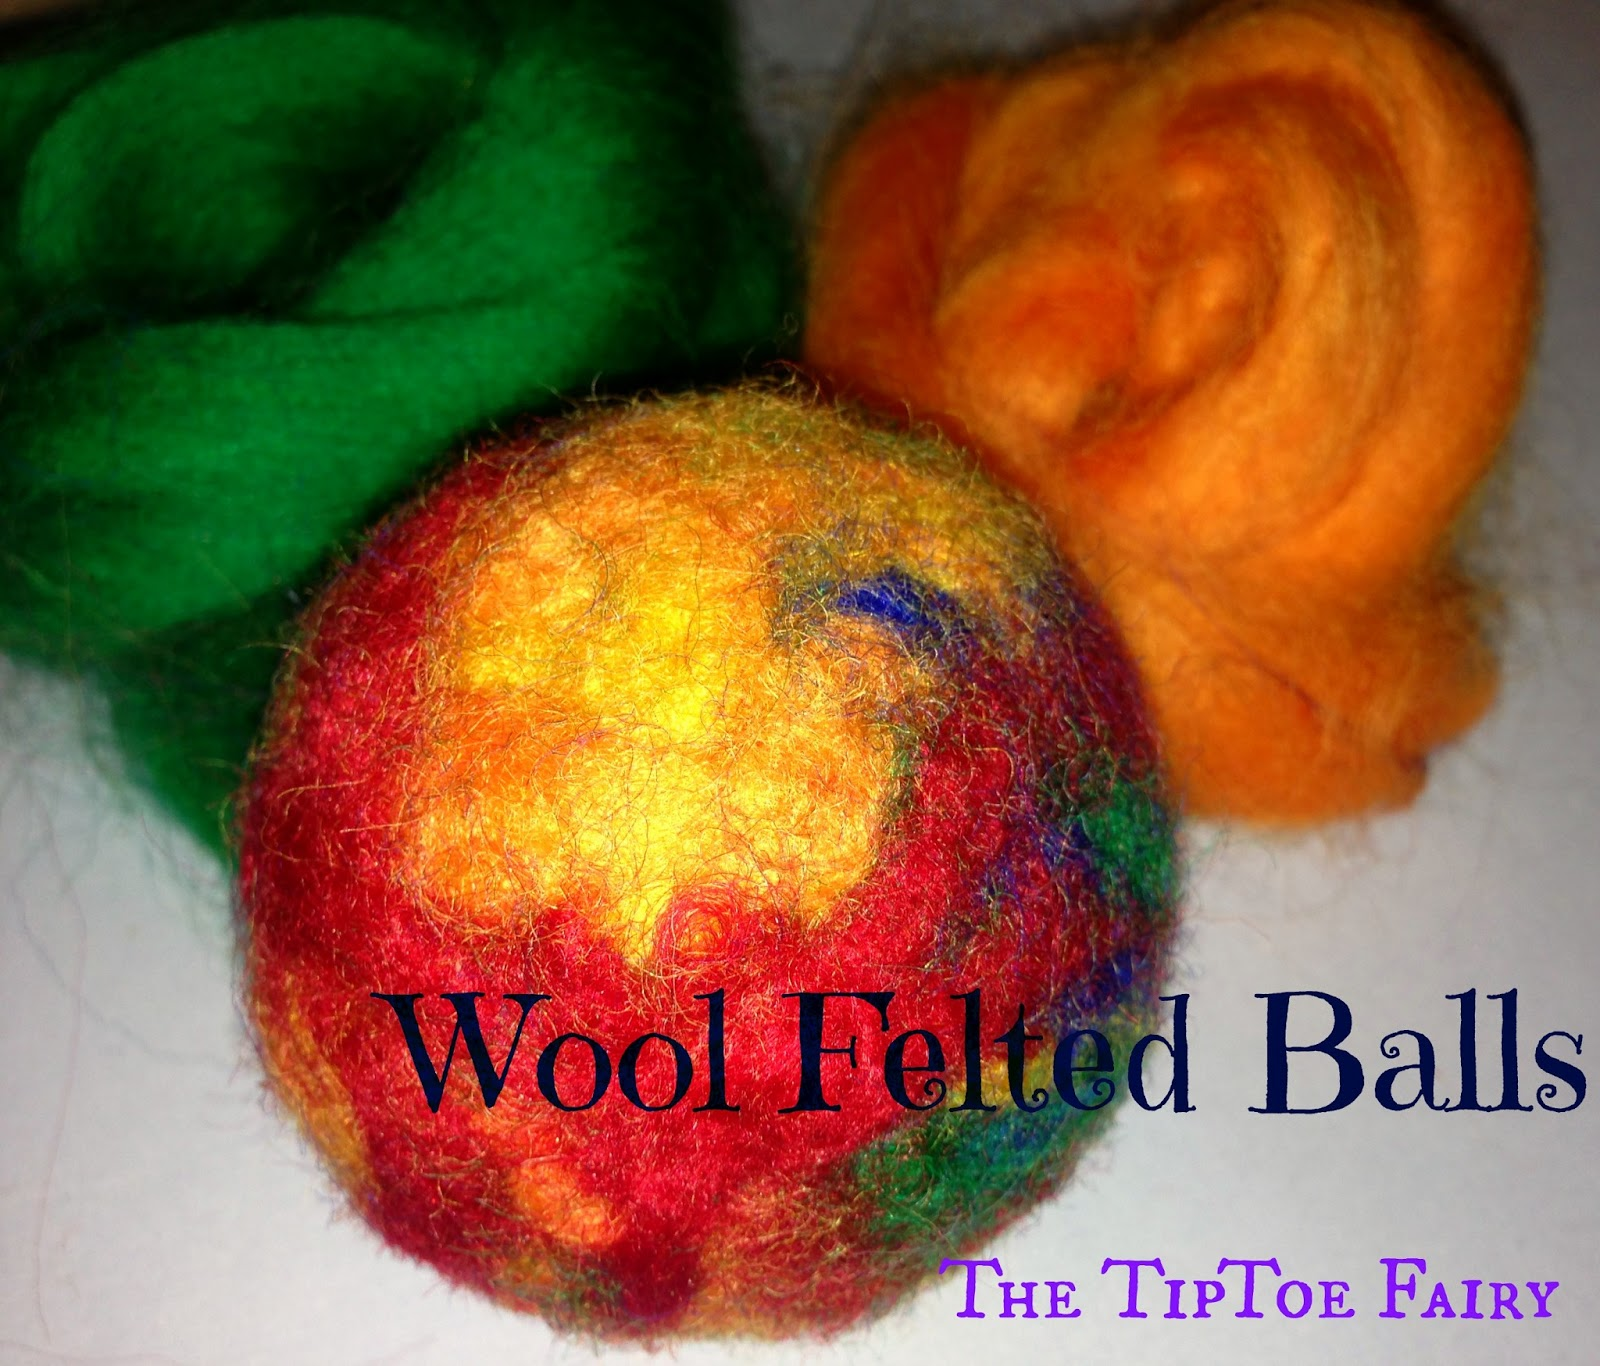 How To Make Wool Felted Balls Pincushions The Tiptoe Fairy